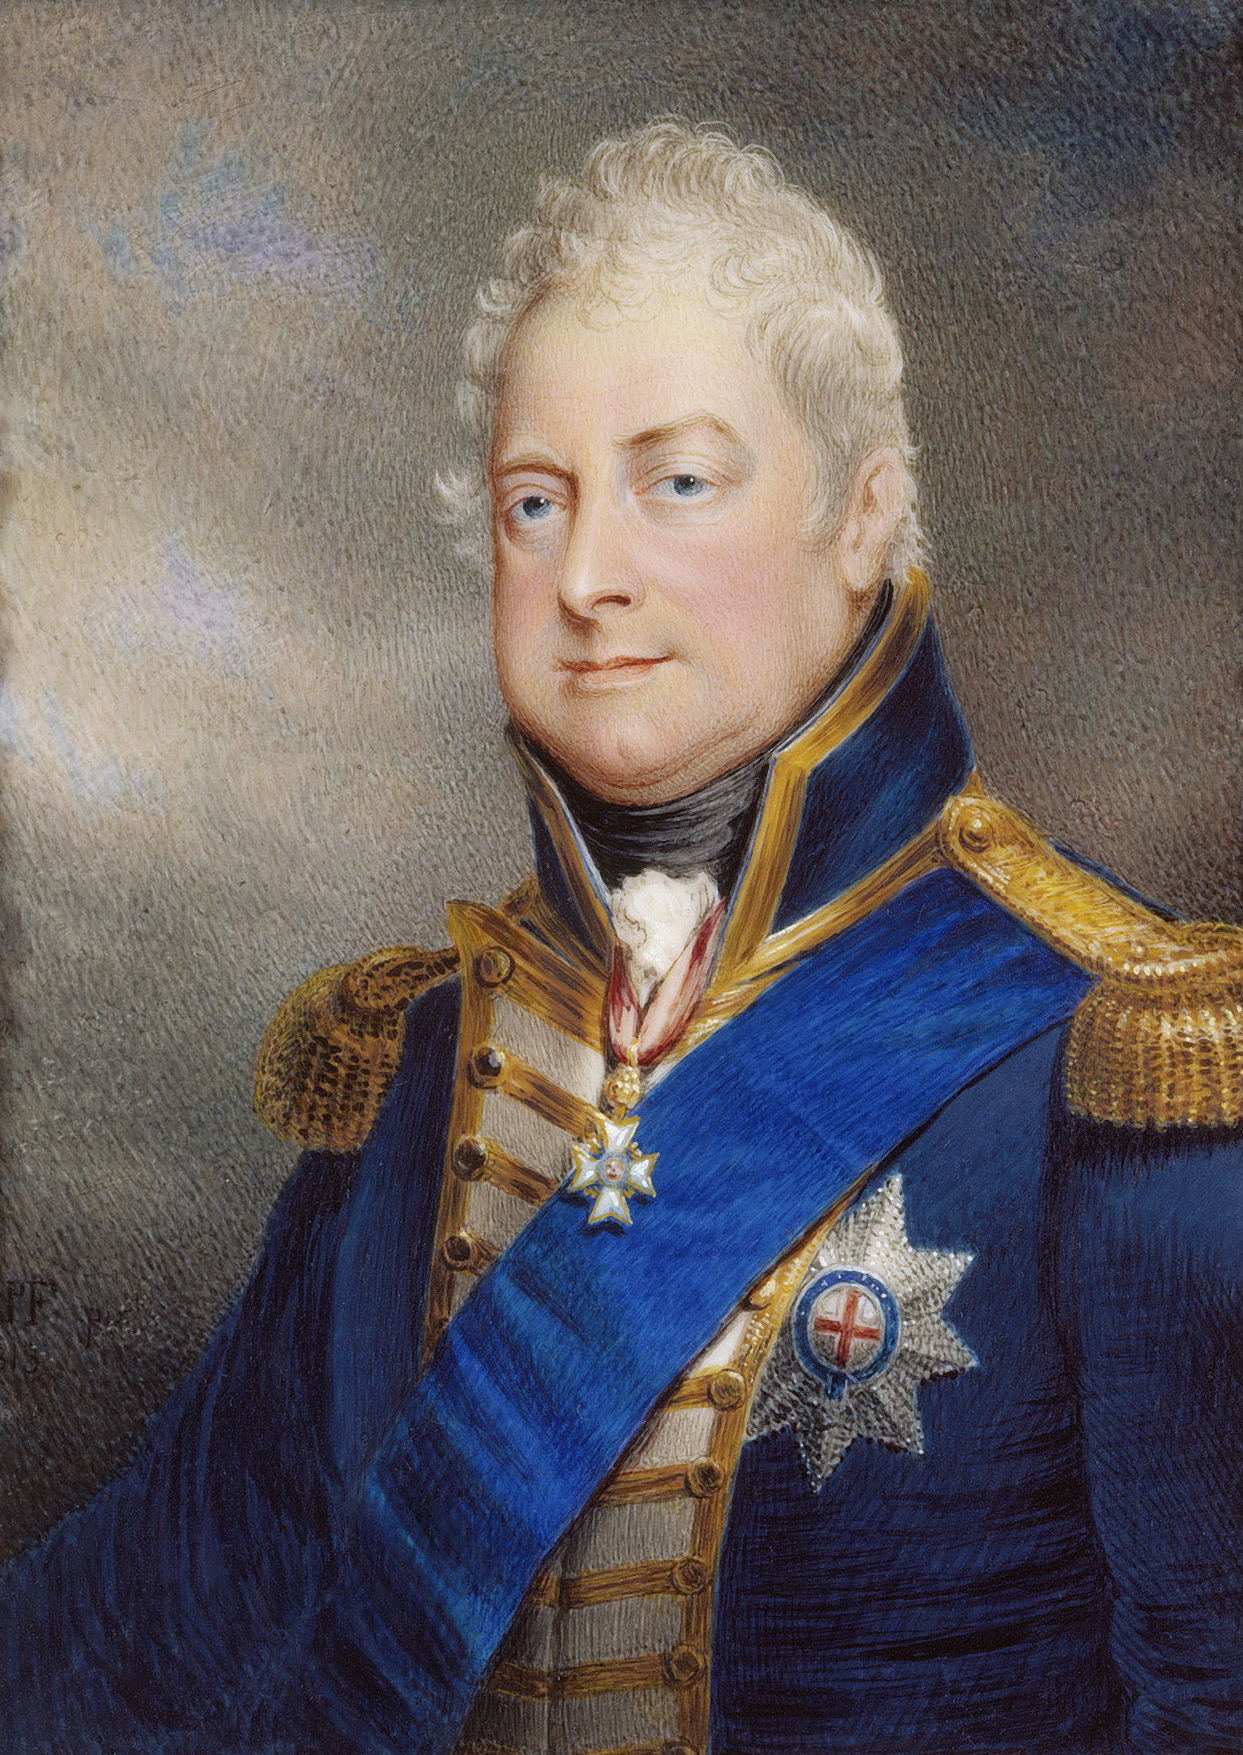 Portrait of William IV (1765-1837), King of the United Kingdom and King of Hanover (1830-1837), Duke of Clarence and St Andrews (1789-1830), Admiral (1798), Admiral of the Fleet (1811), Lord High Admiral (1827-1828), 1837 | Portraits of Kings